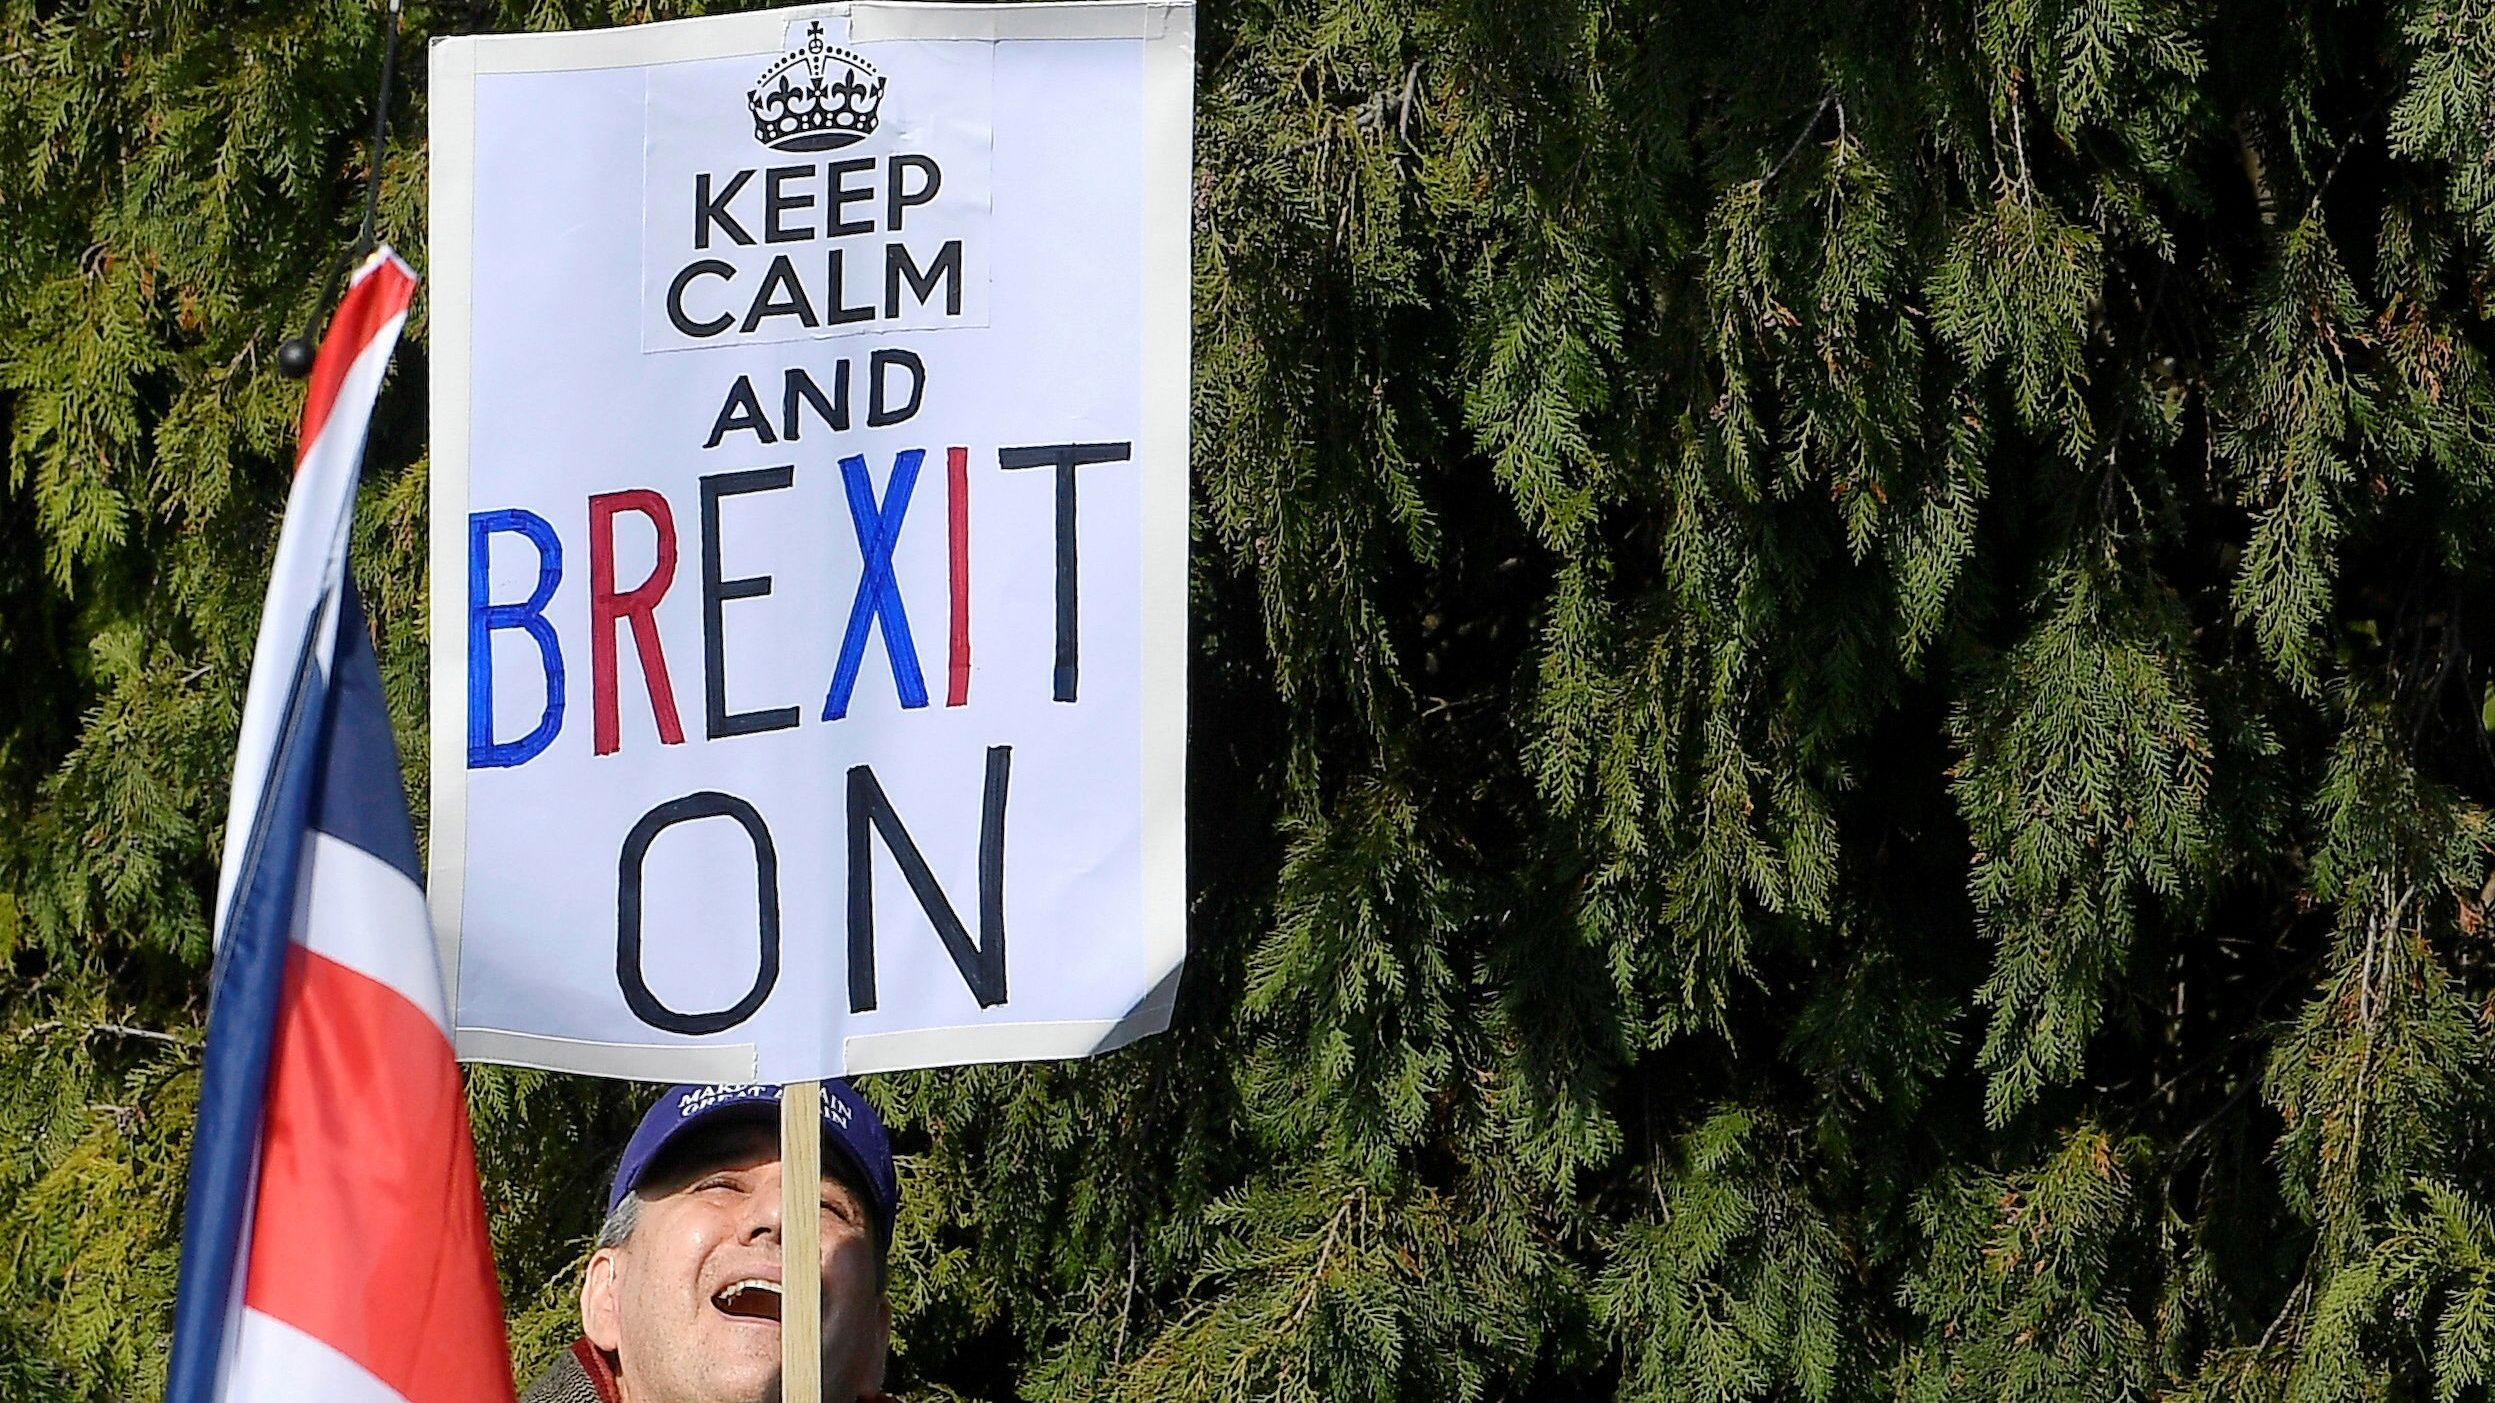 For Brexiteers, leave means leave.